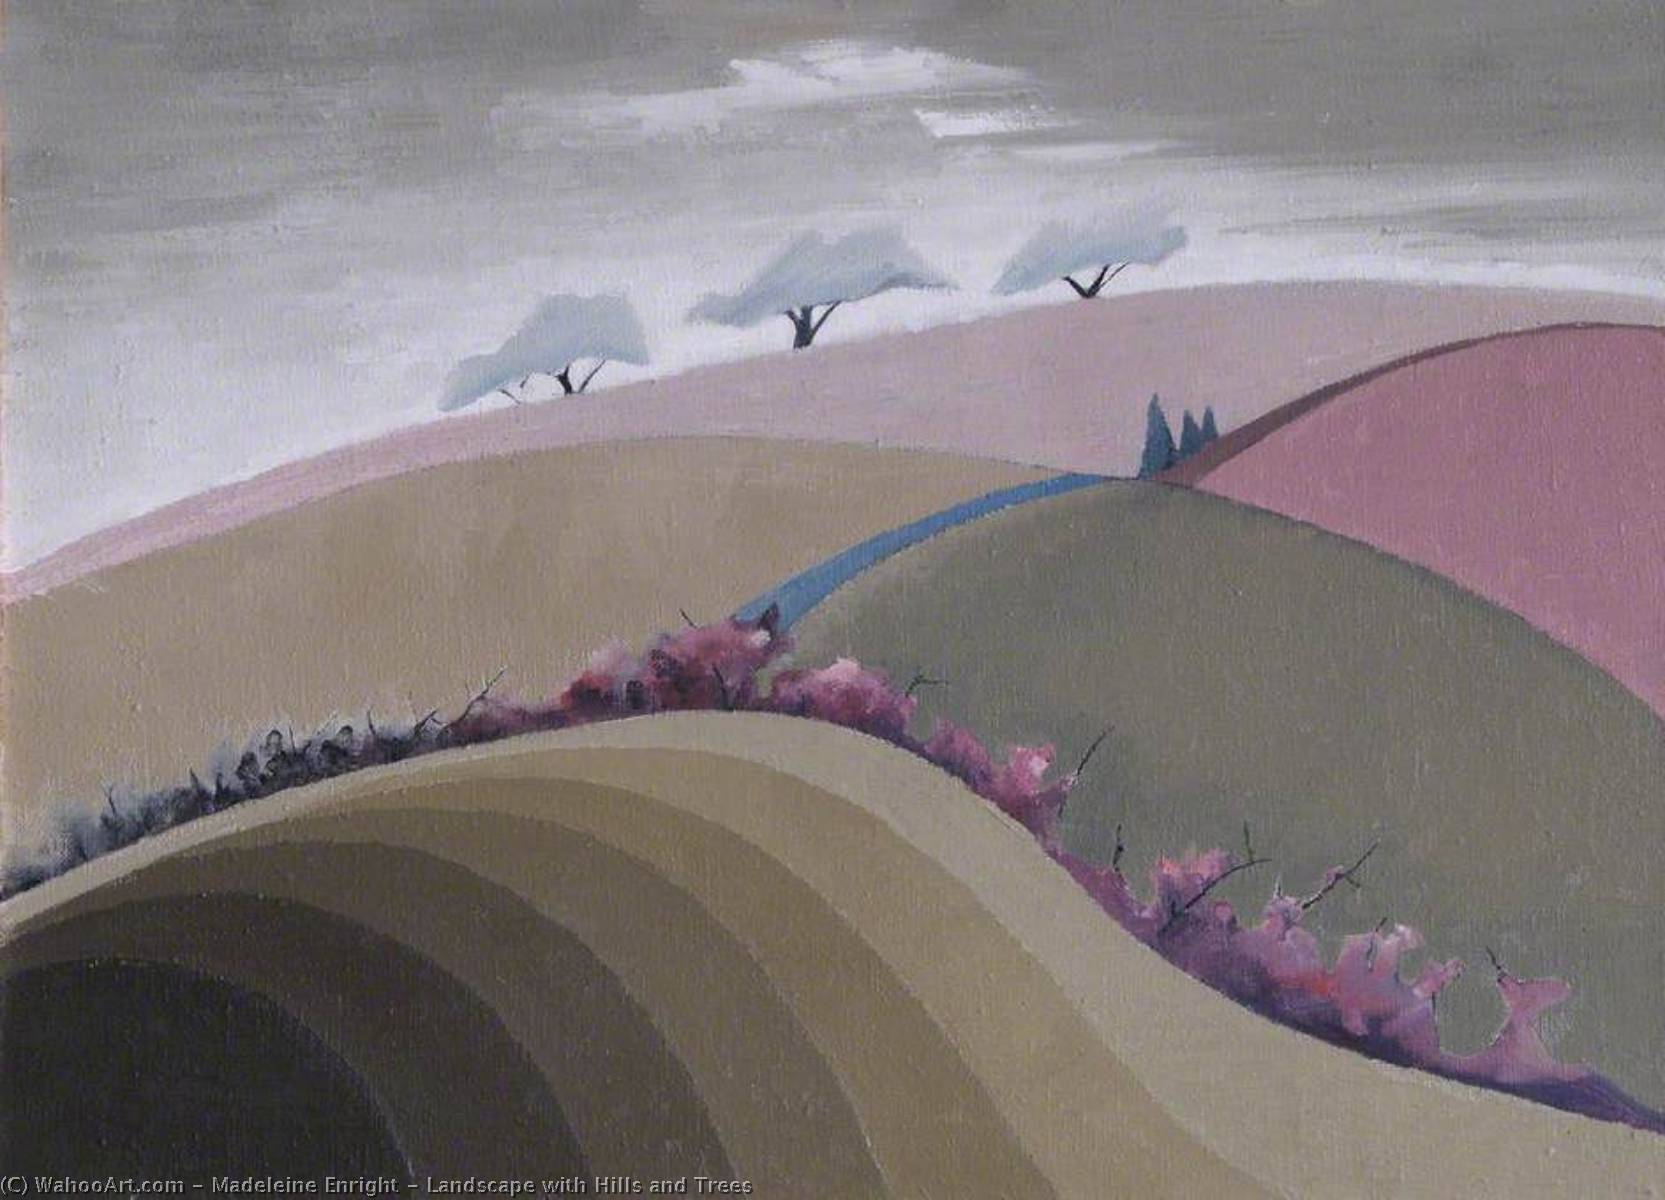 Landscape with Hills and Trees by Madeleine Enright | WahooArt.com